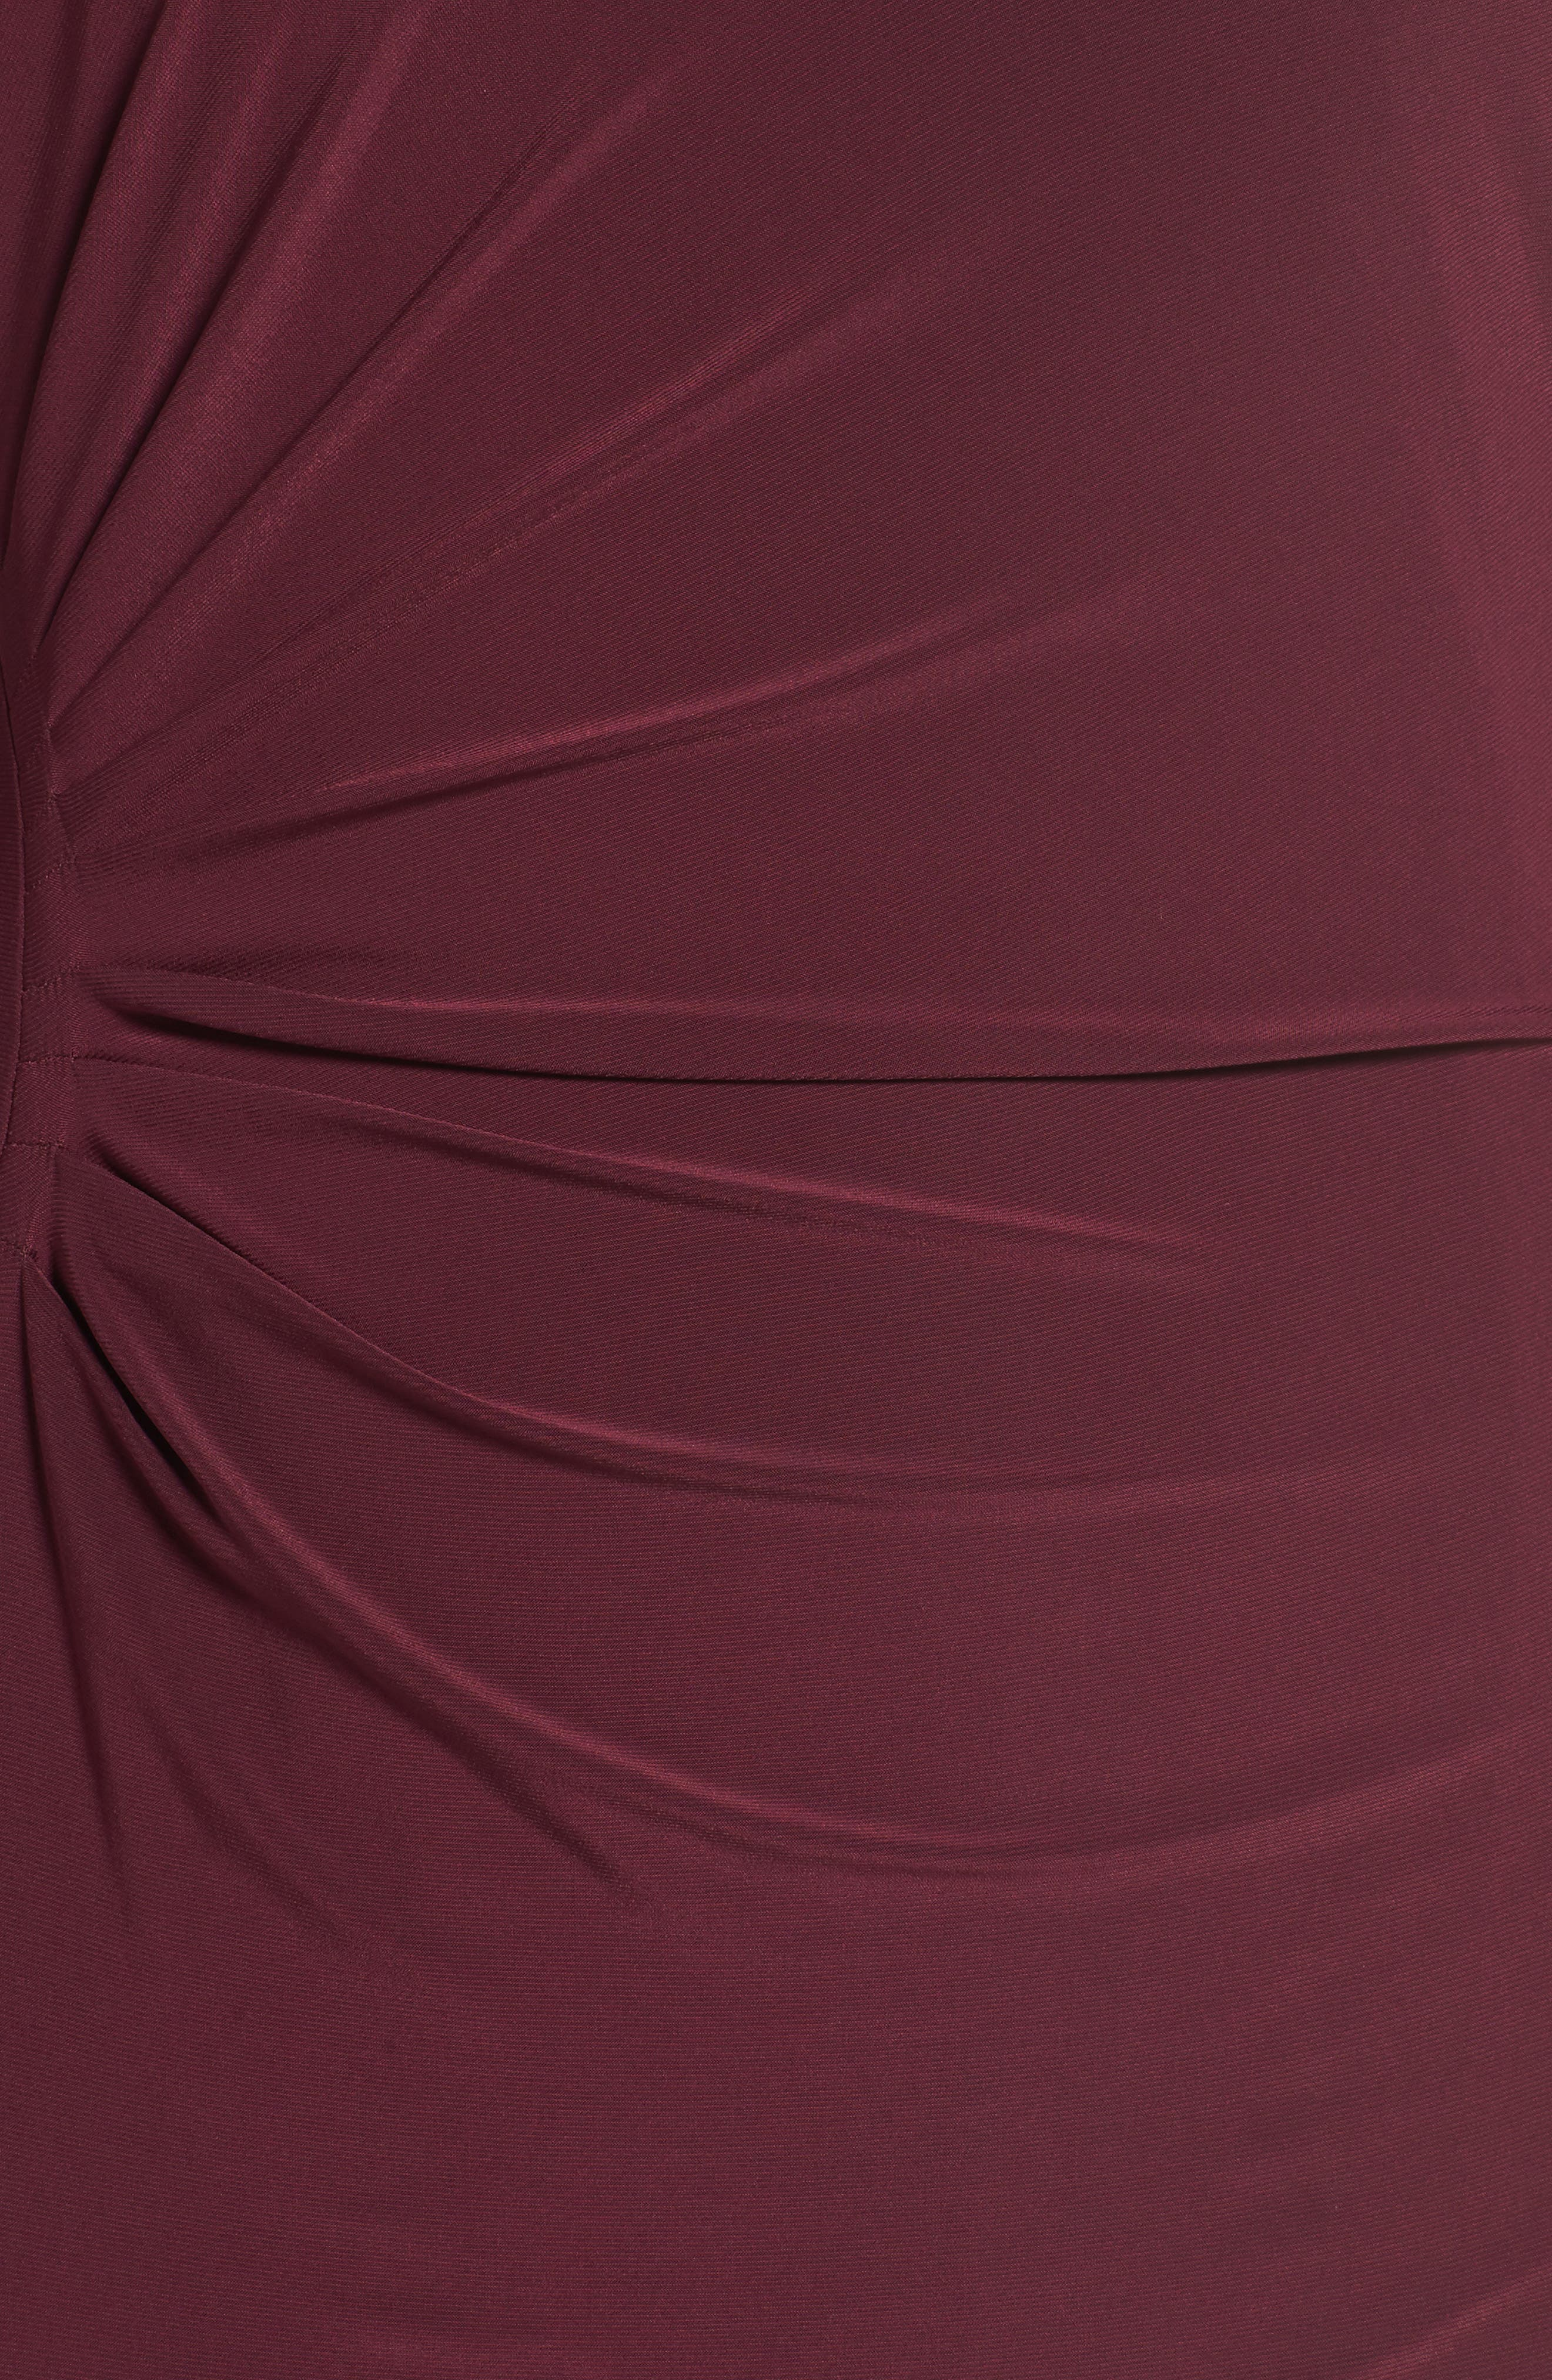 Embellished Jersey A-Line Gown,                             Alternate thumbnail 10, color,